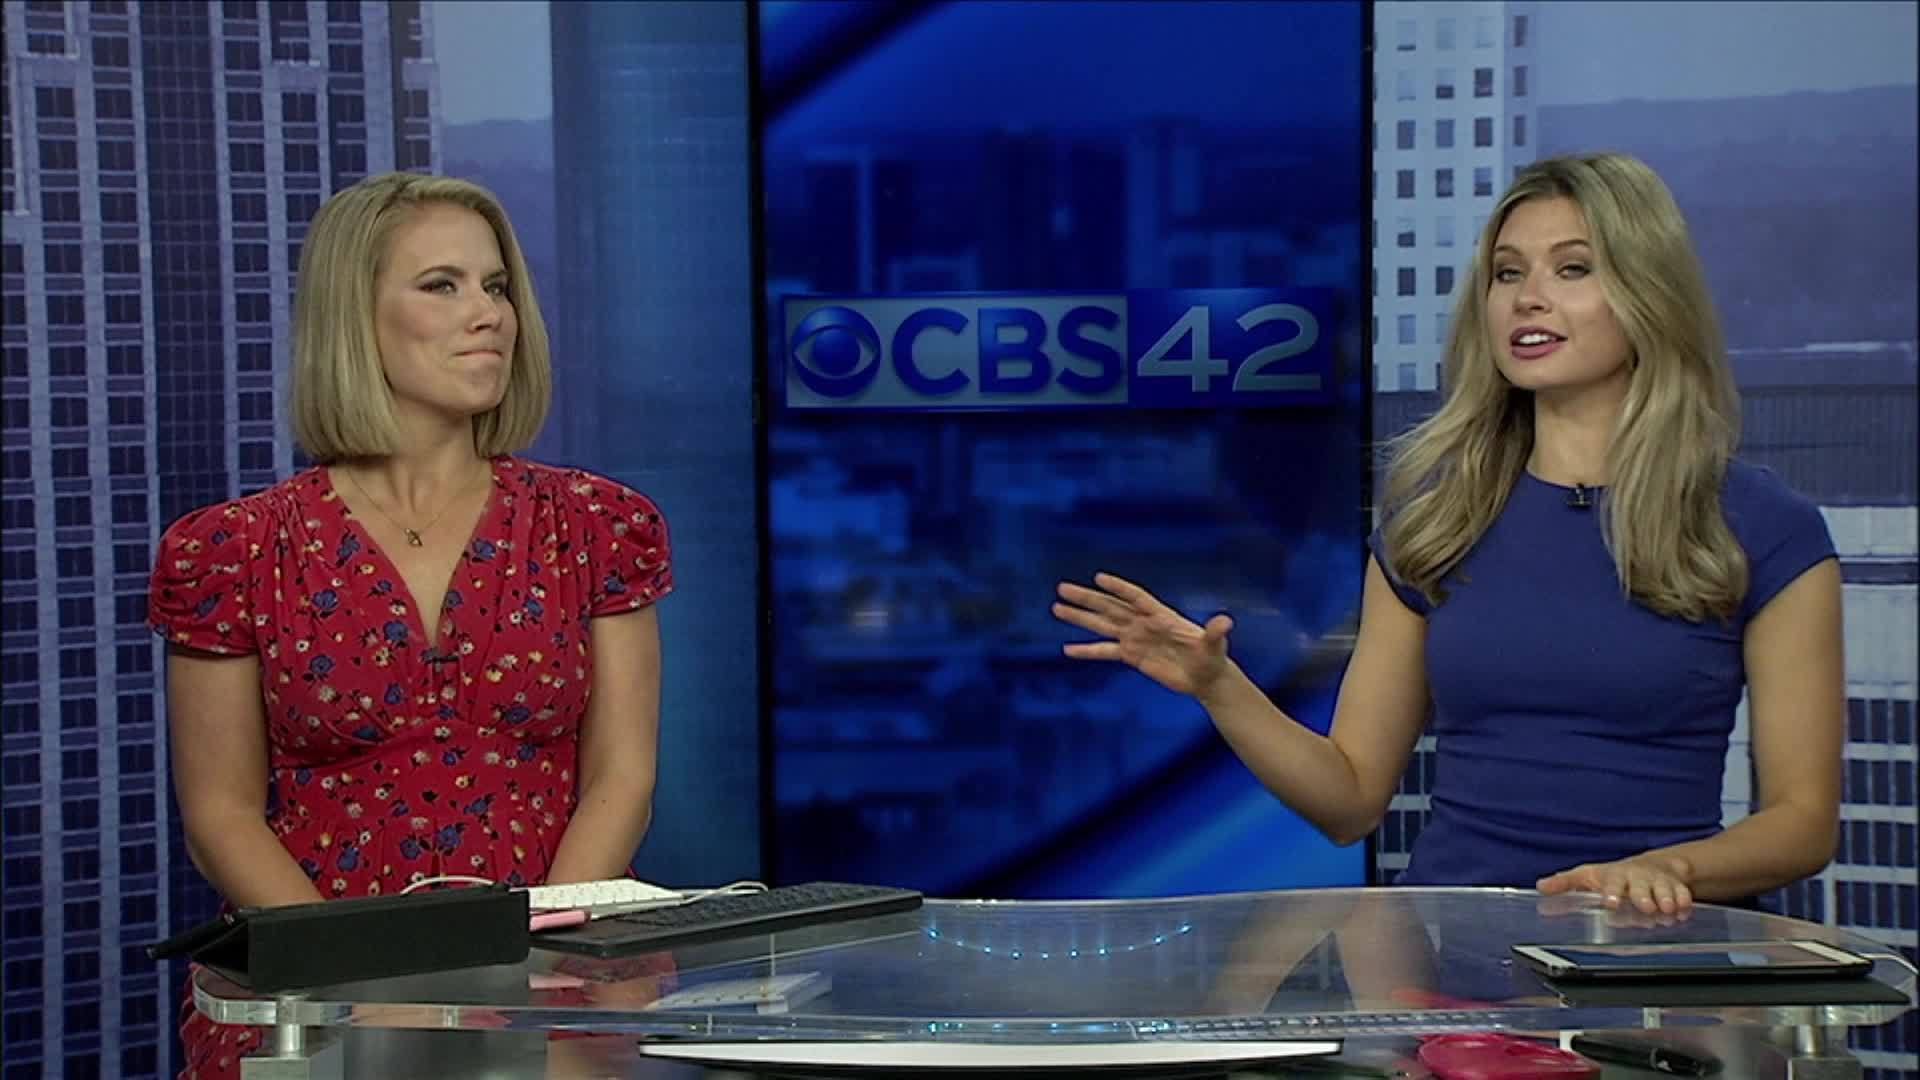 Michelle and Leigh answer CBS 42 Sports Team Bonefrog challenge